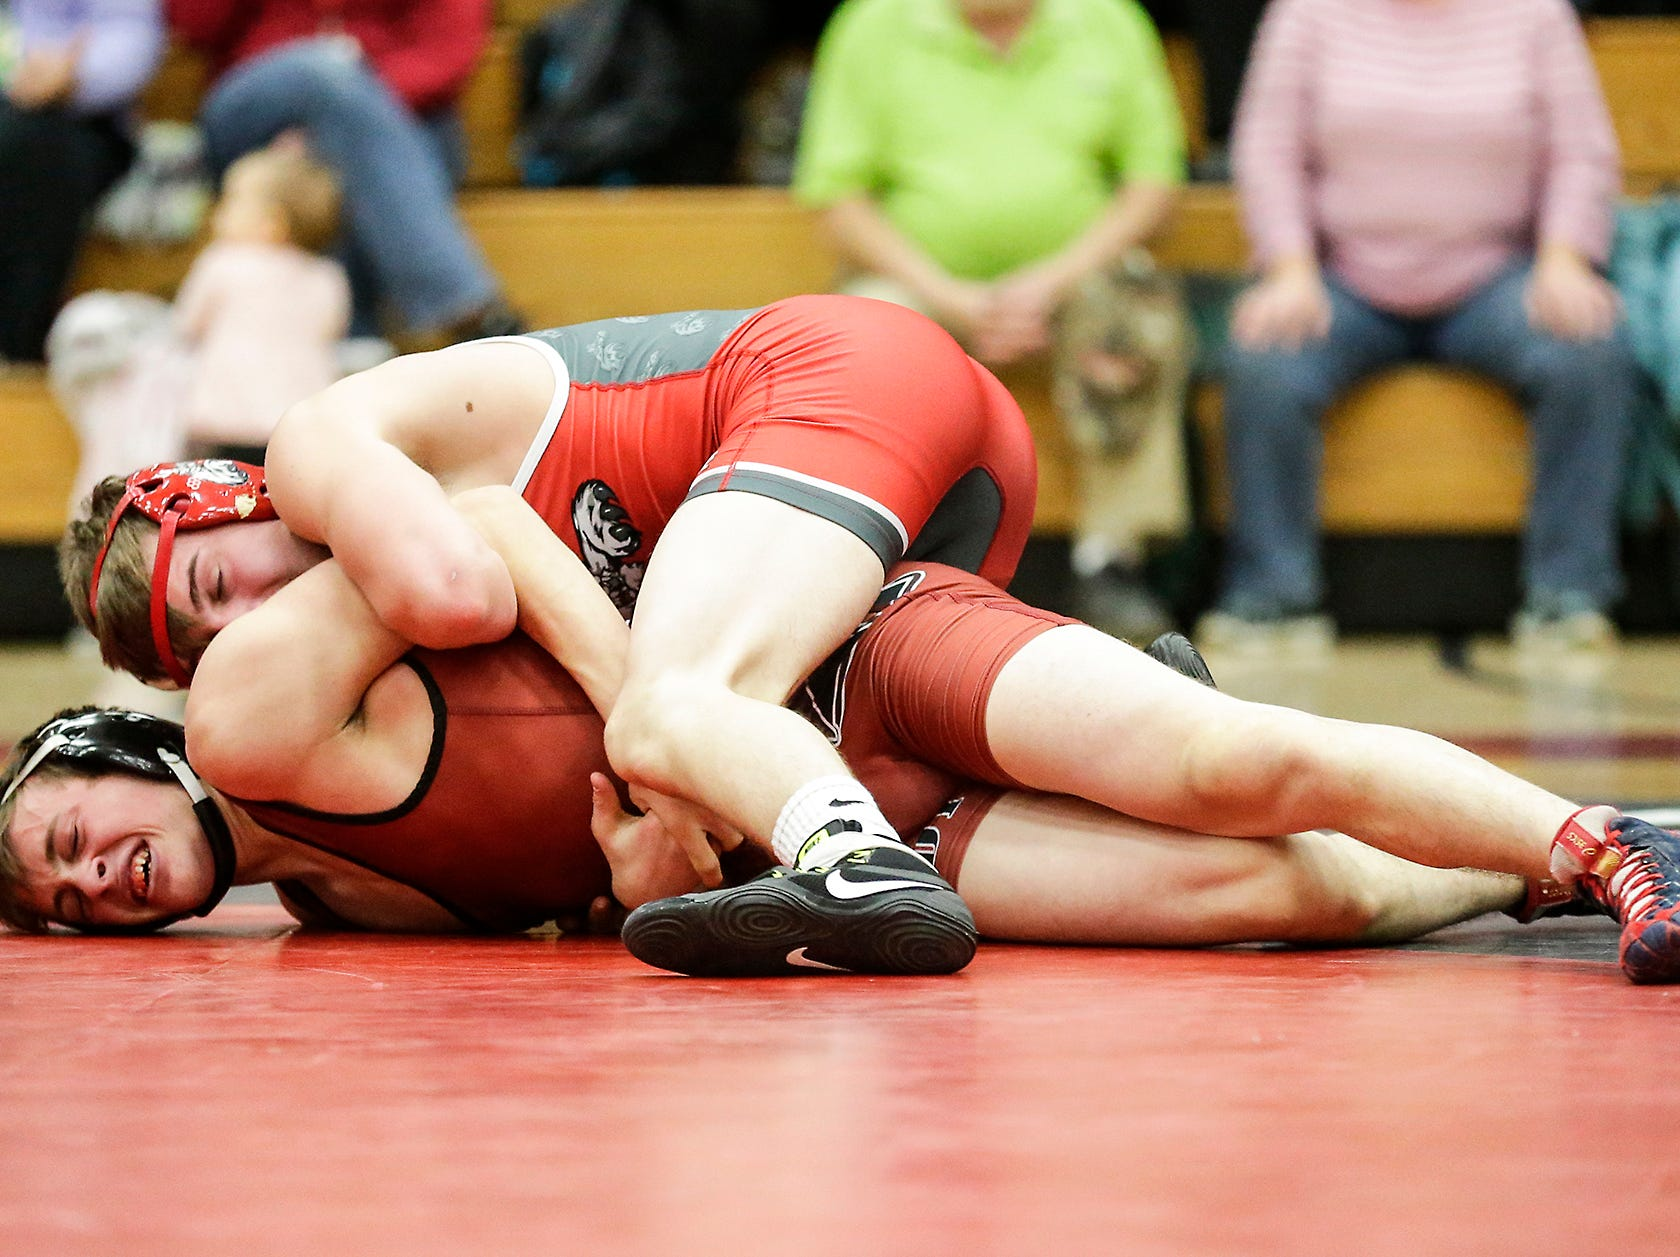 Fond du Lac High School wrestling's Tristan MacDonald wrestles against Hortonville High School's Landon Thern in the 138 weight class during their meet Thrusday, December 6, 2018 in Fond du Lac, Wisconsin. Thern won the match with a pin and Fond du Lac won the meet 51-18. Doug Raflik/USA TODAY NETWORK-Wisconsin